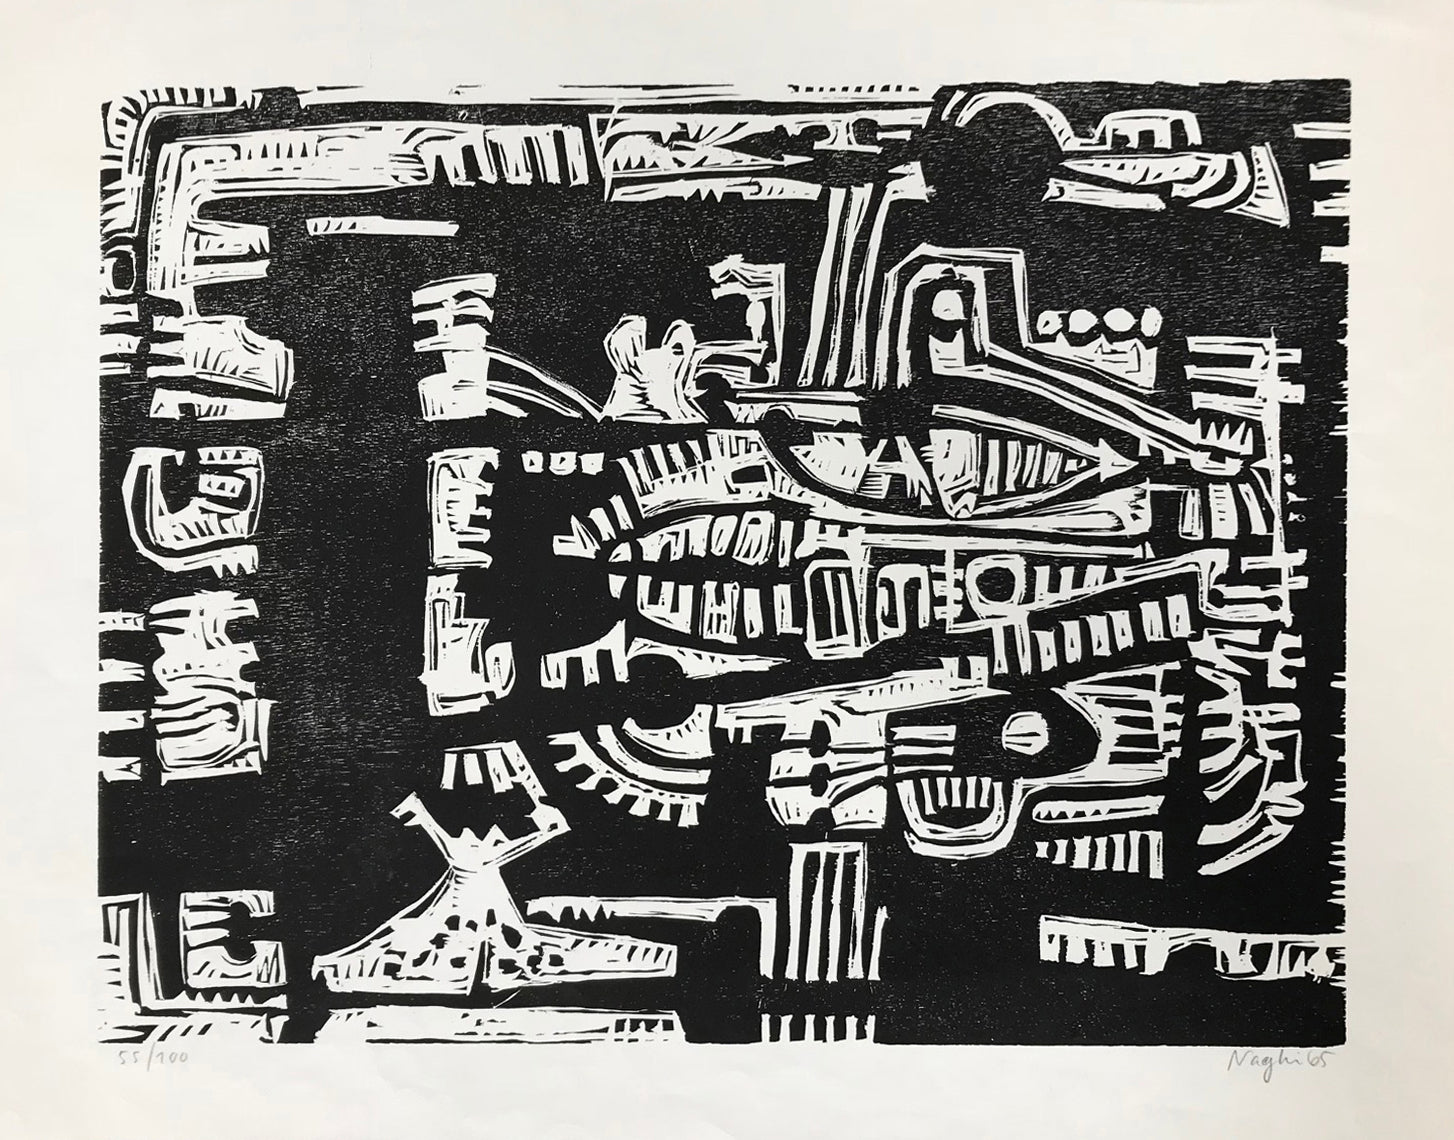 Black & White Woodcut Composition: Edition 55/100